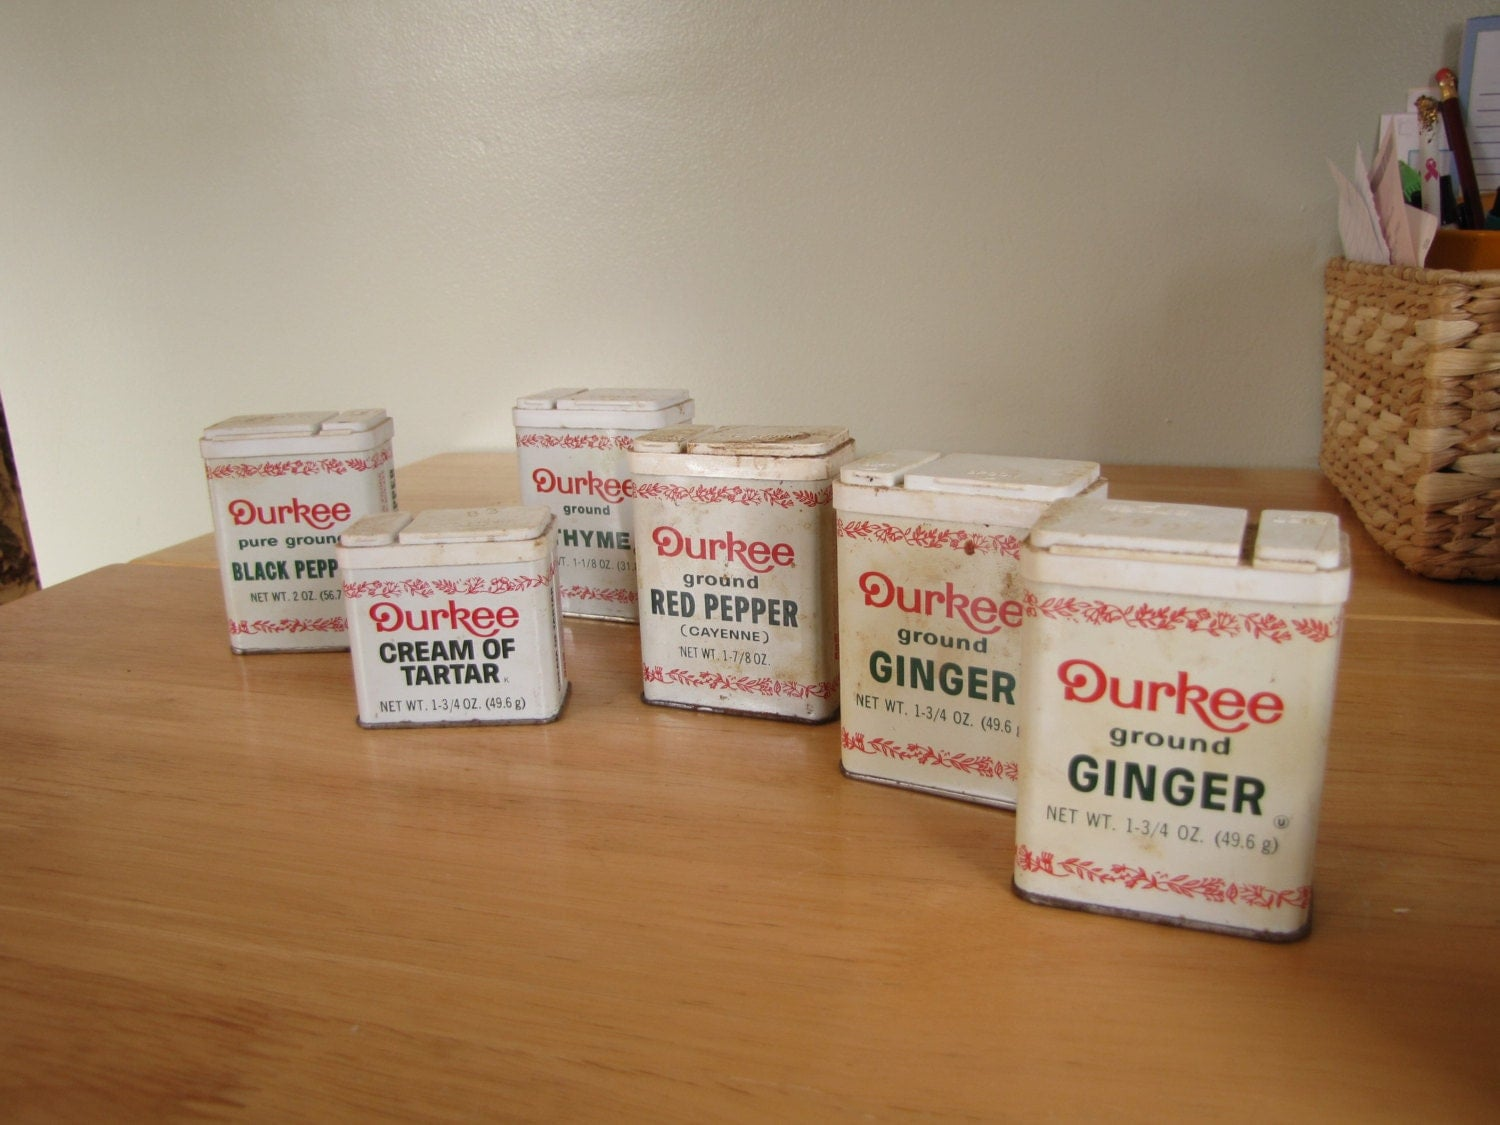 Vintage durkee spice tins lot of 6 tins for Retro kitchen set of 6 spice tins